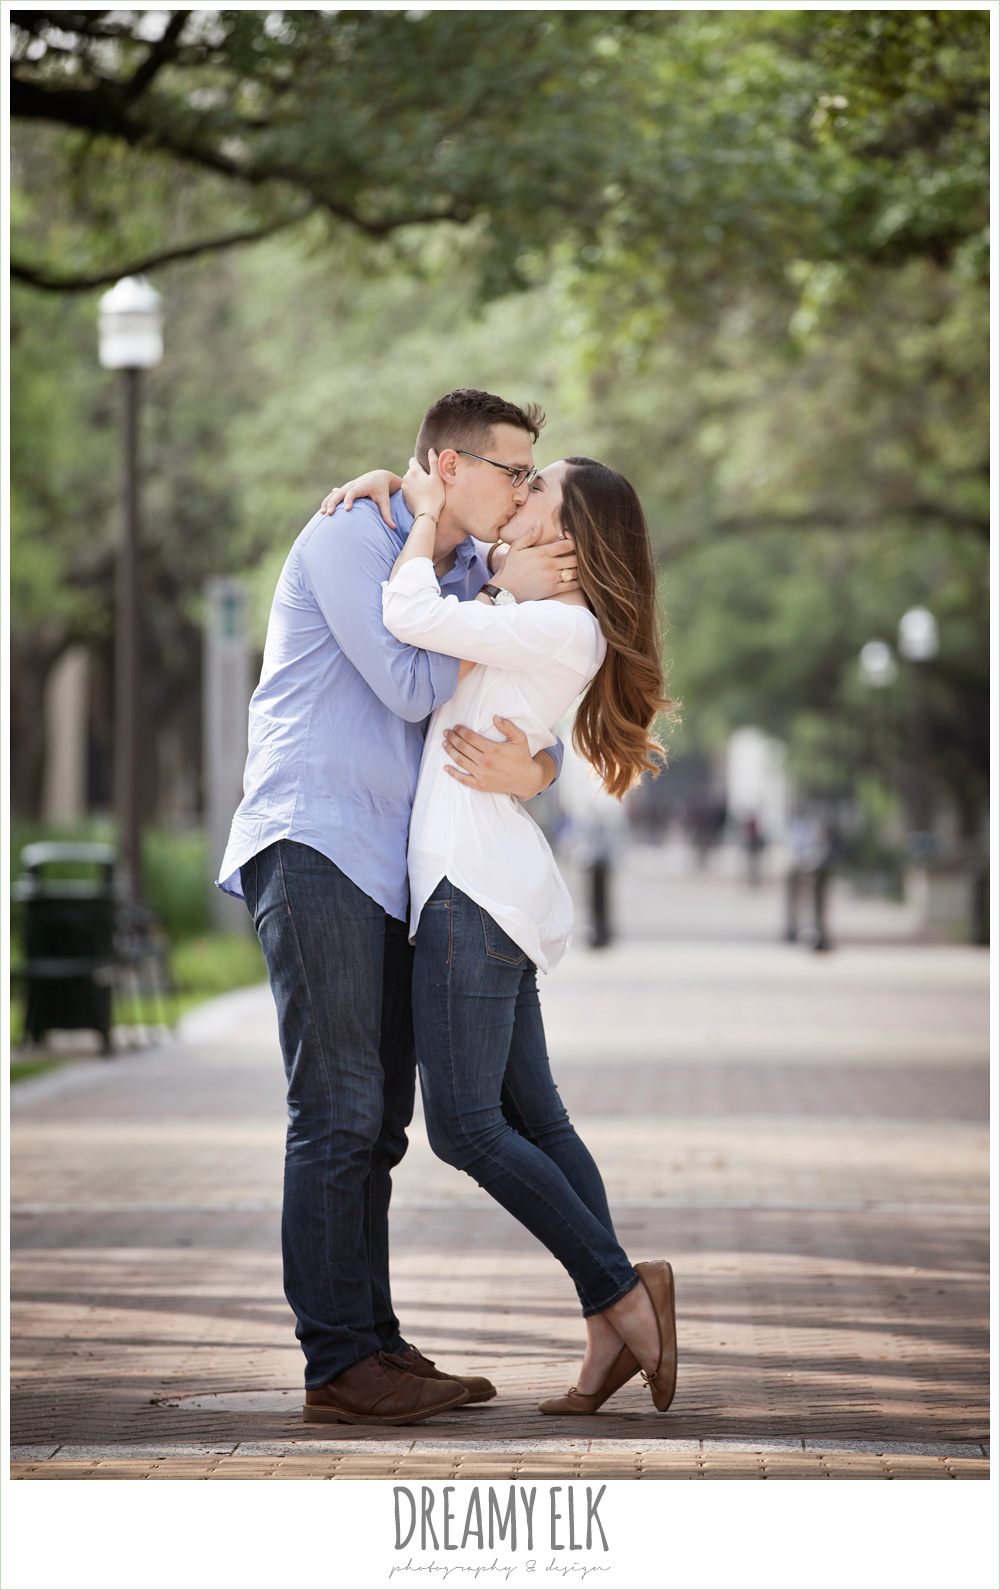 girl and guy kissing, military walk, texas a&m campus engagement photo, college station, texas {dreamy elk photography and design}